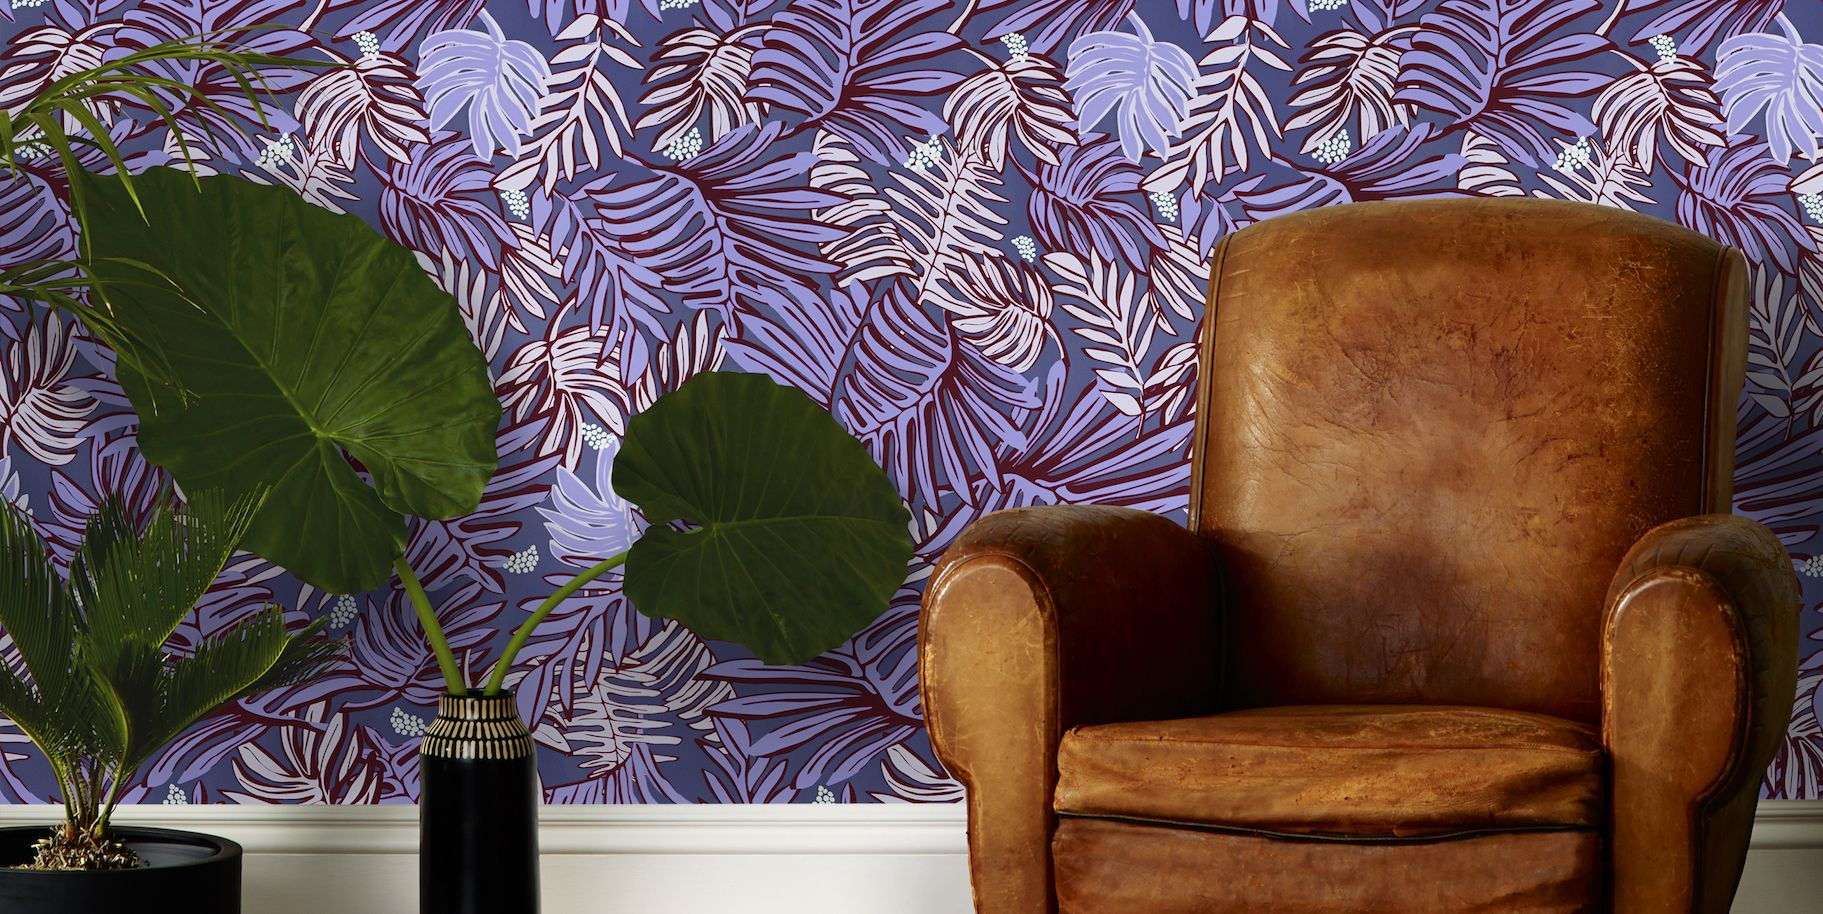 35 Cool Home Wallpapers Pattern Wallpaper Design Ideas